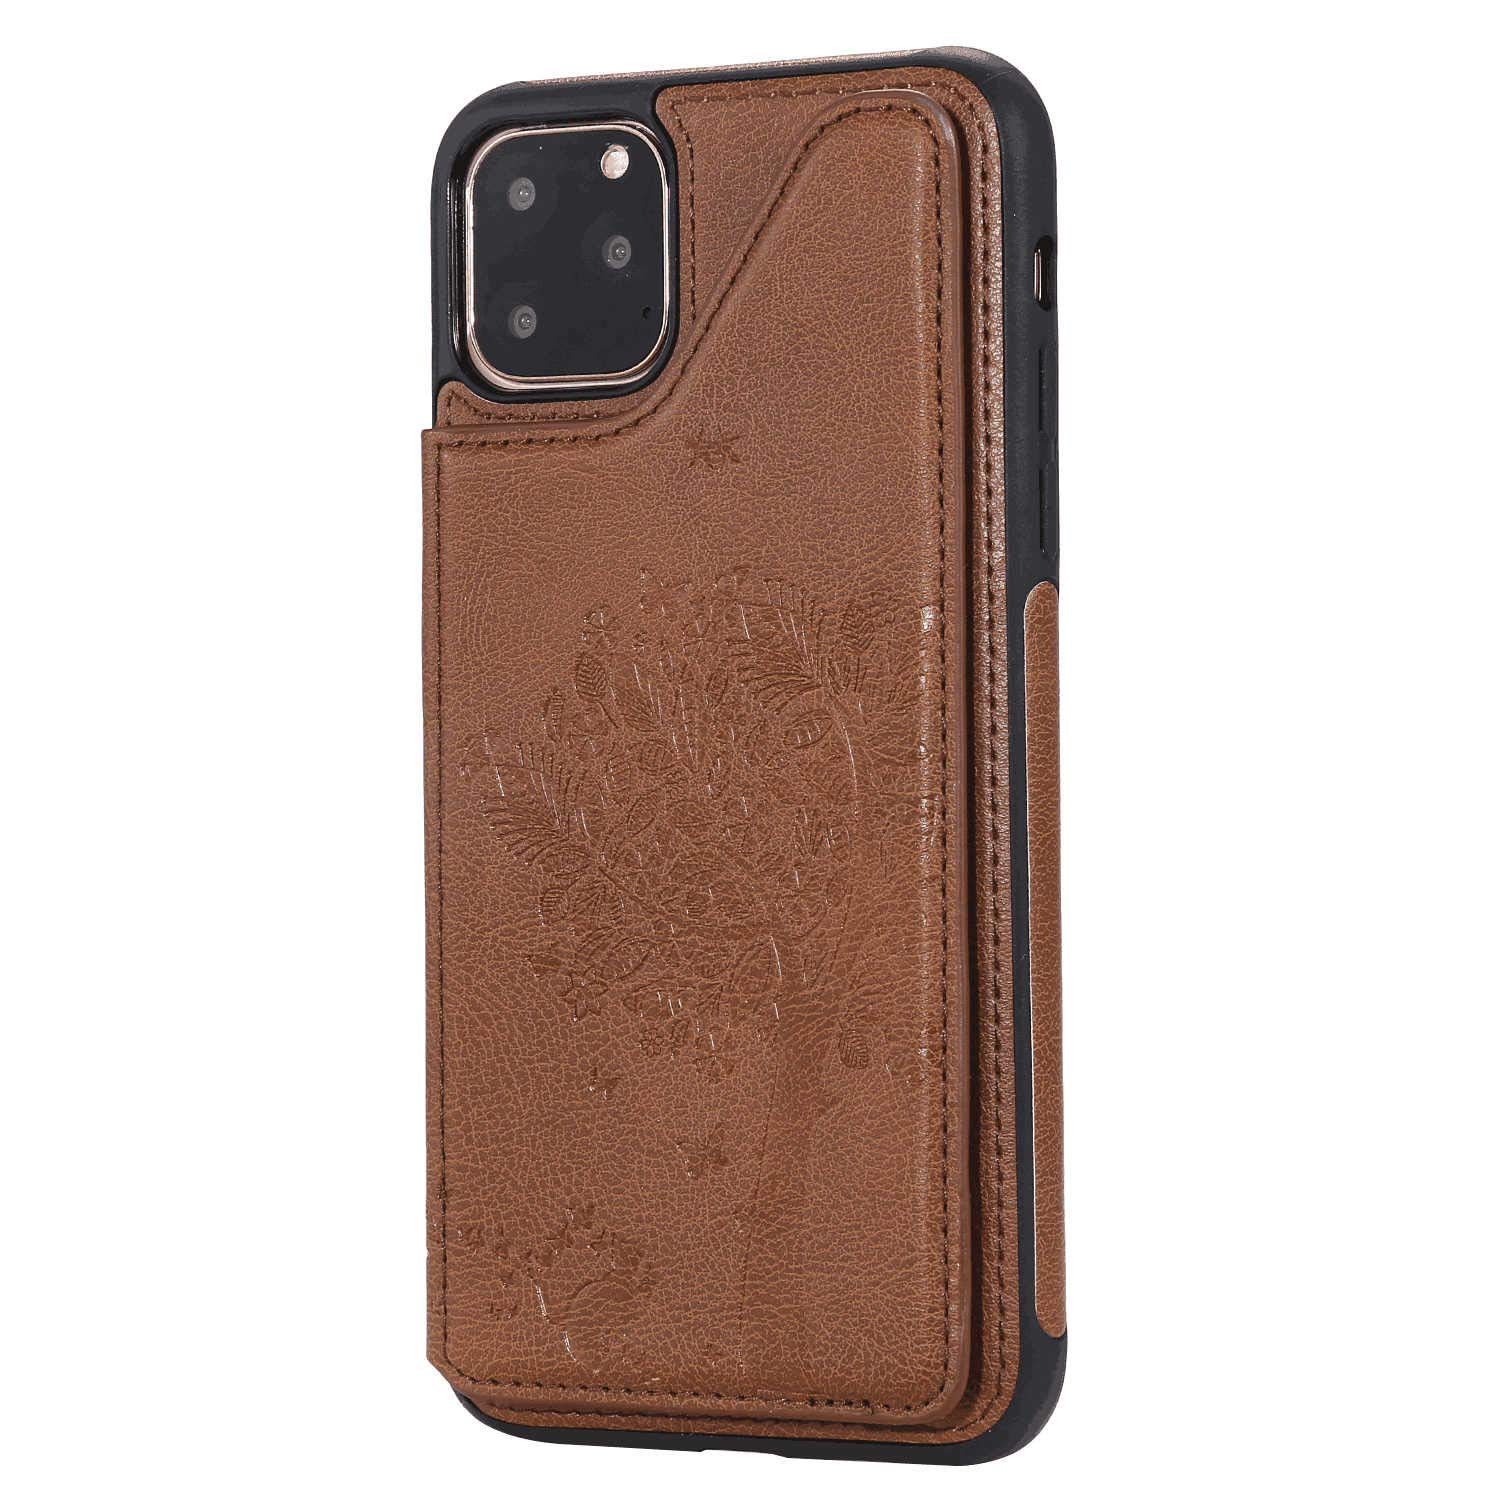 Cover for Samsung Galaxy S8 Plus Leather Extra-Shockproof Business Card Holders Cell Phone Cover Kickstand with Free Waterproof-Bag Samsung Galaxy S8 Plus Flip Case